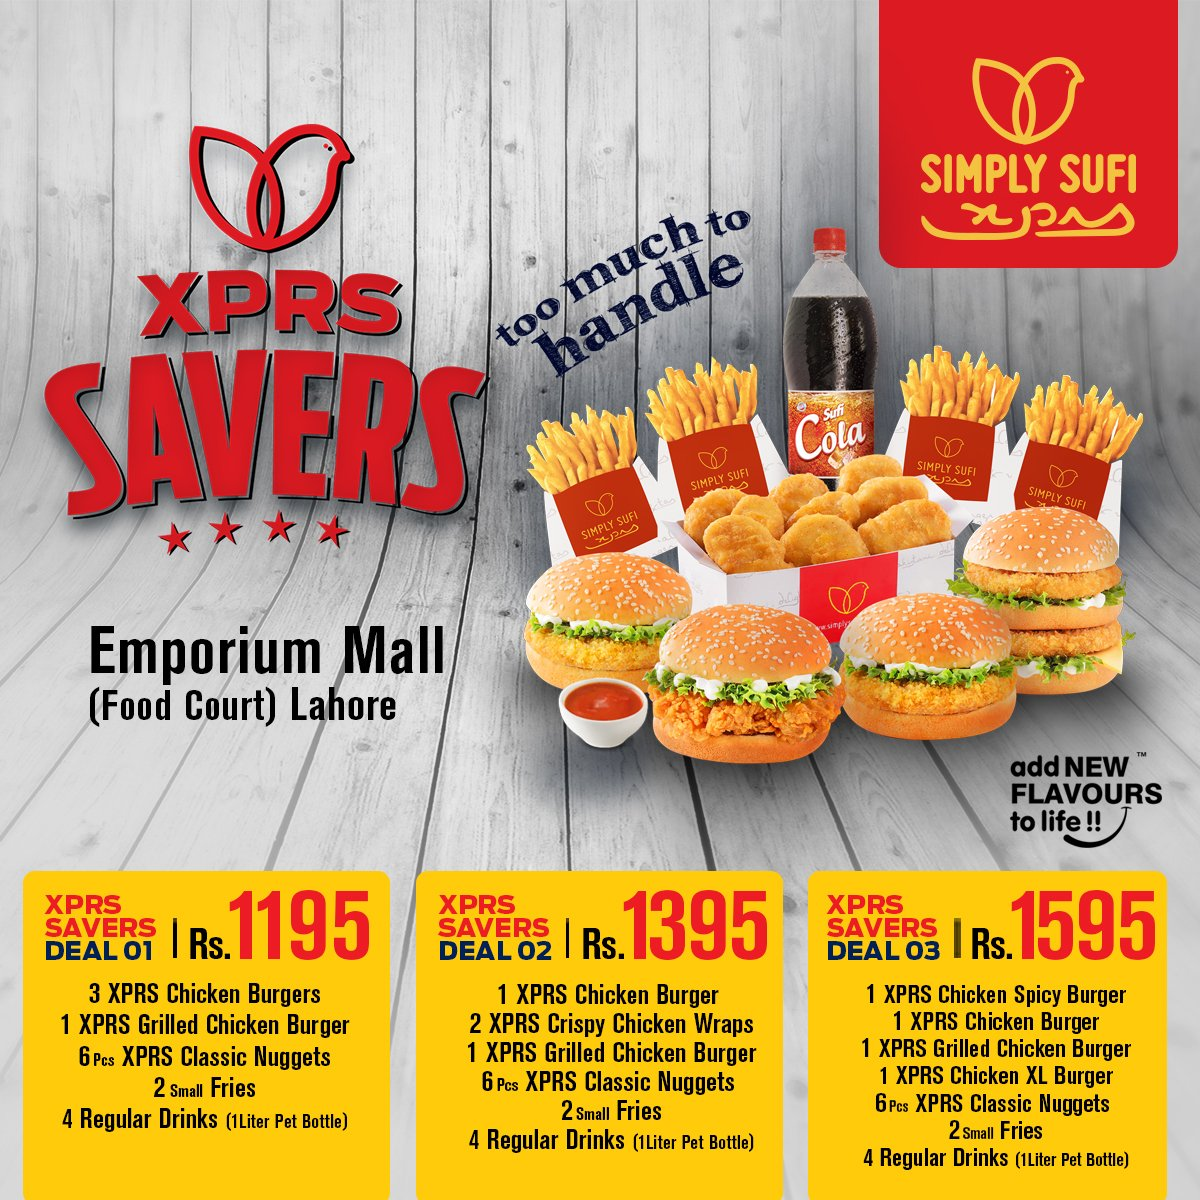 Simplysufixprs On Twitter Now Enjoy Our Three Amazing Xprs Savers Deals Simplysufixprs Emporiummall Lahore Xprssavers Winterdeals